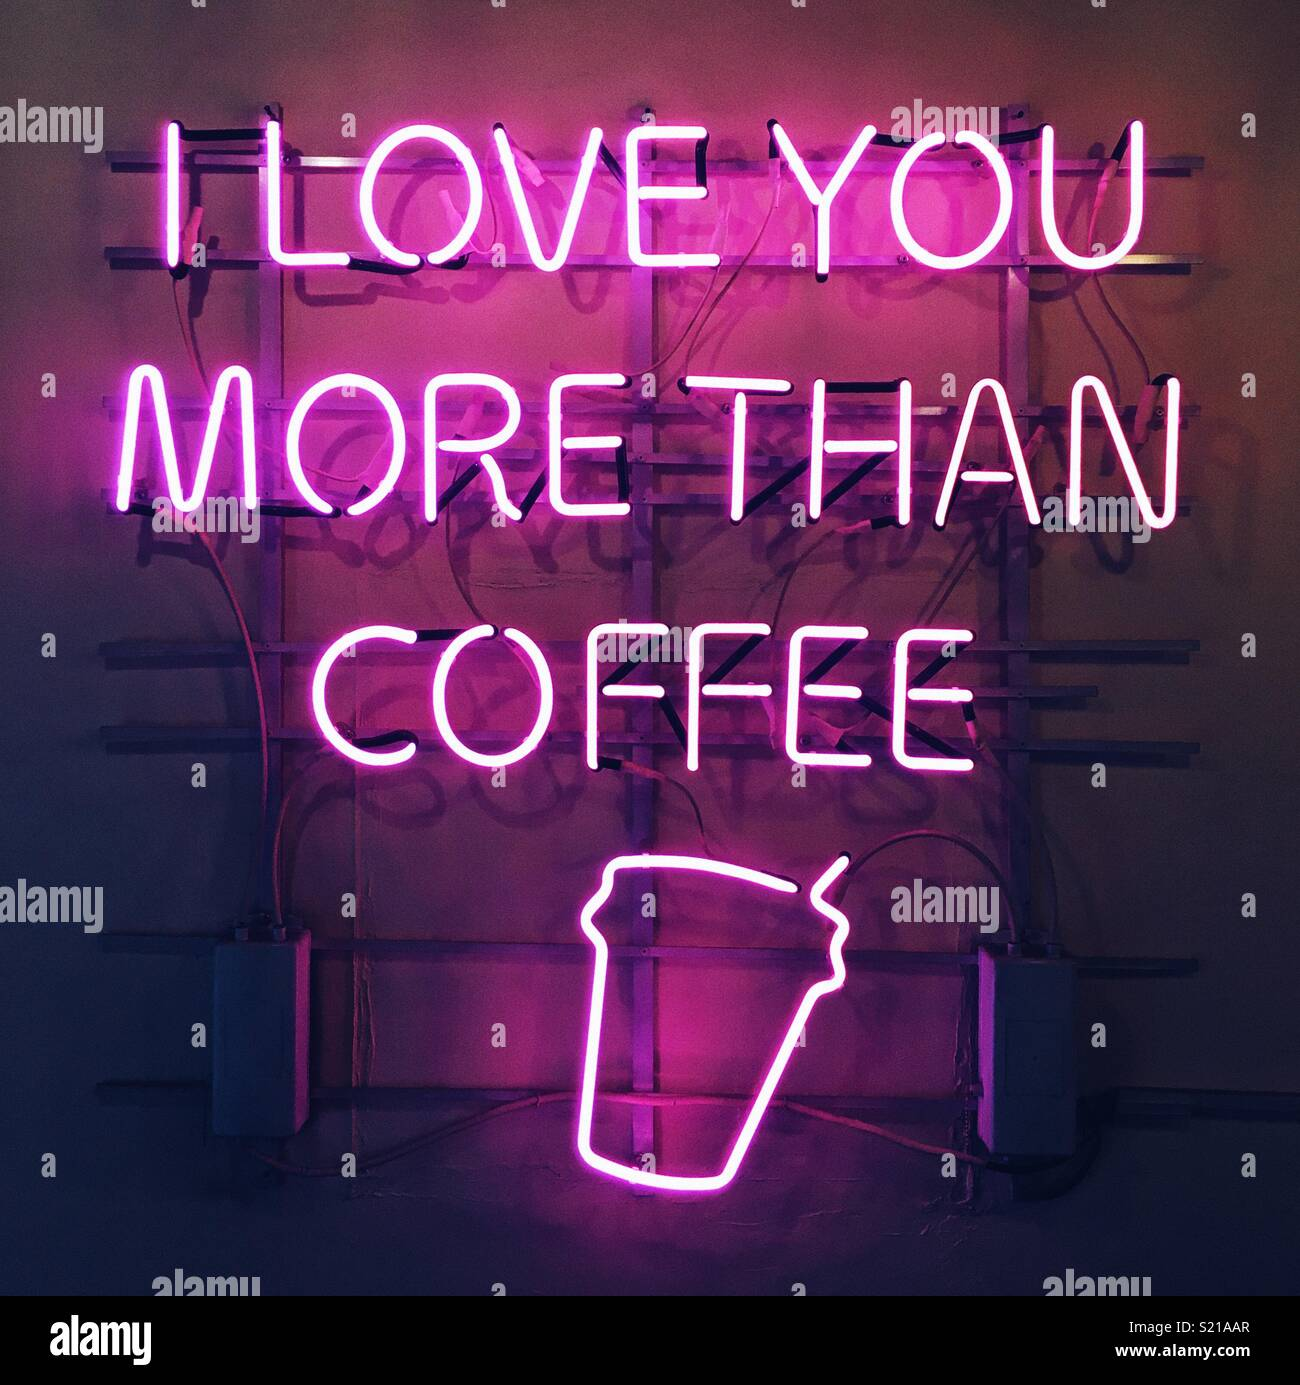 I love you more than coffee - Stock Image